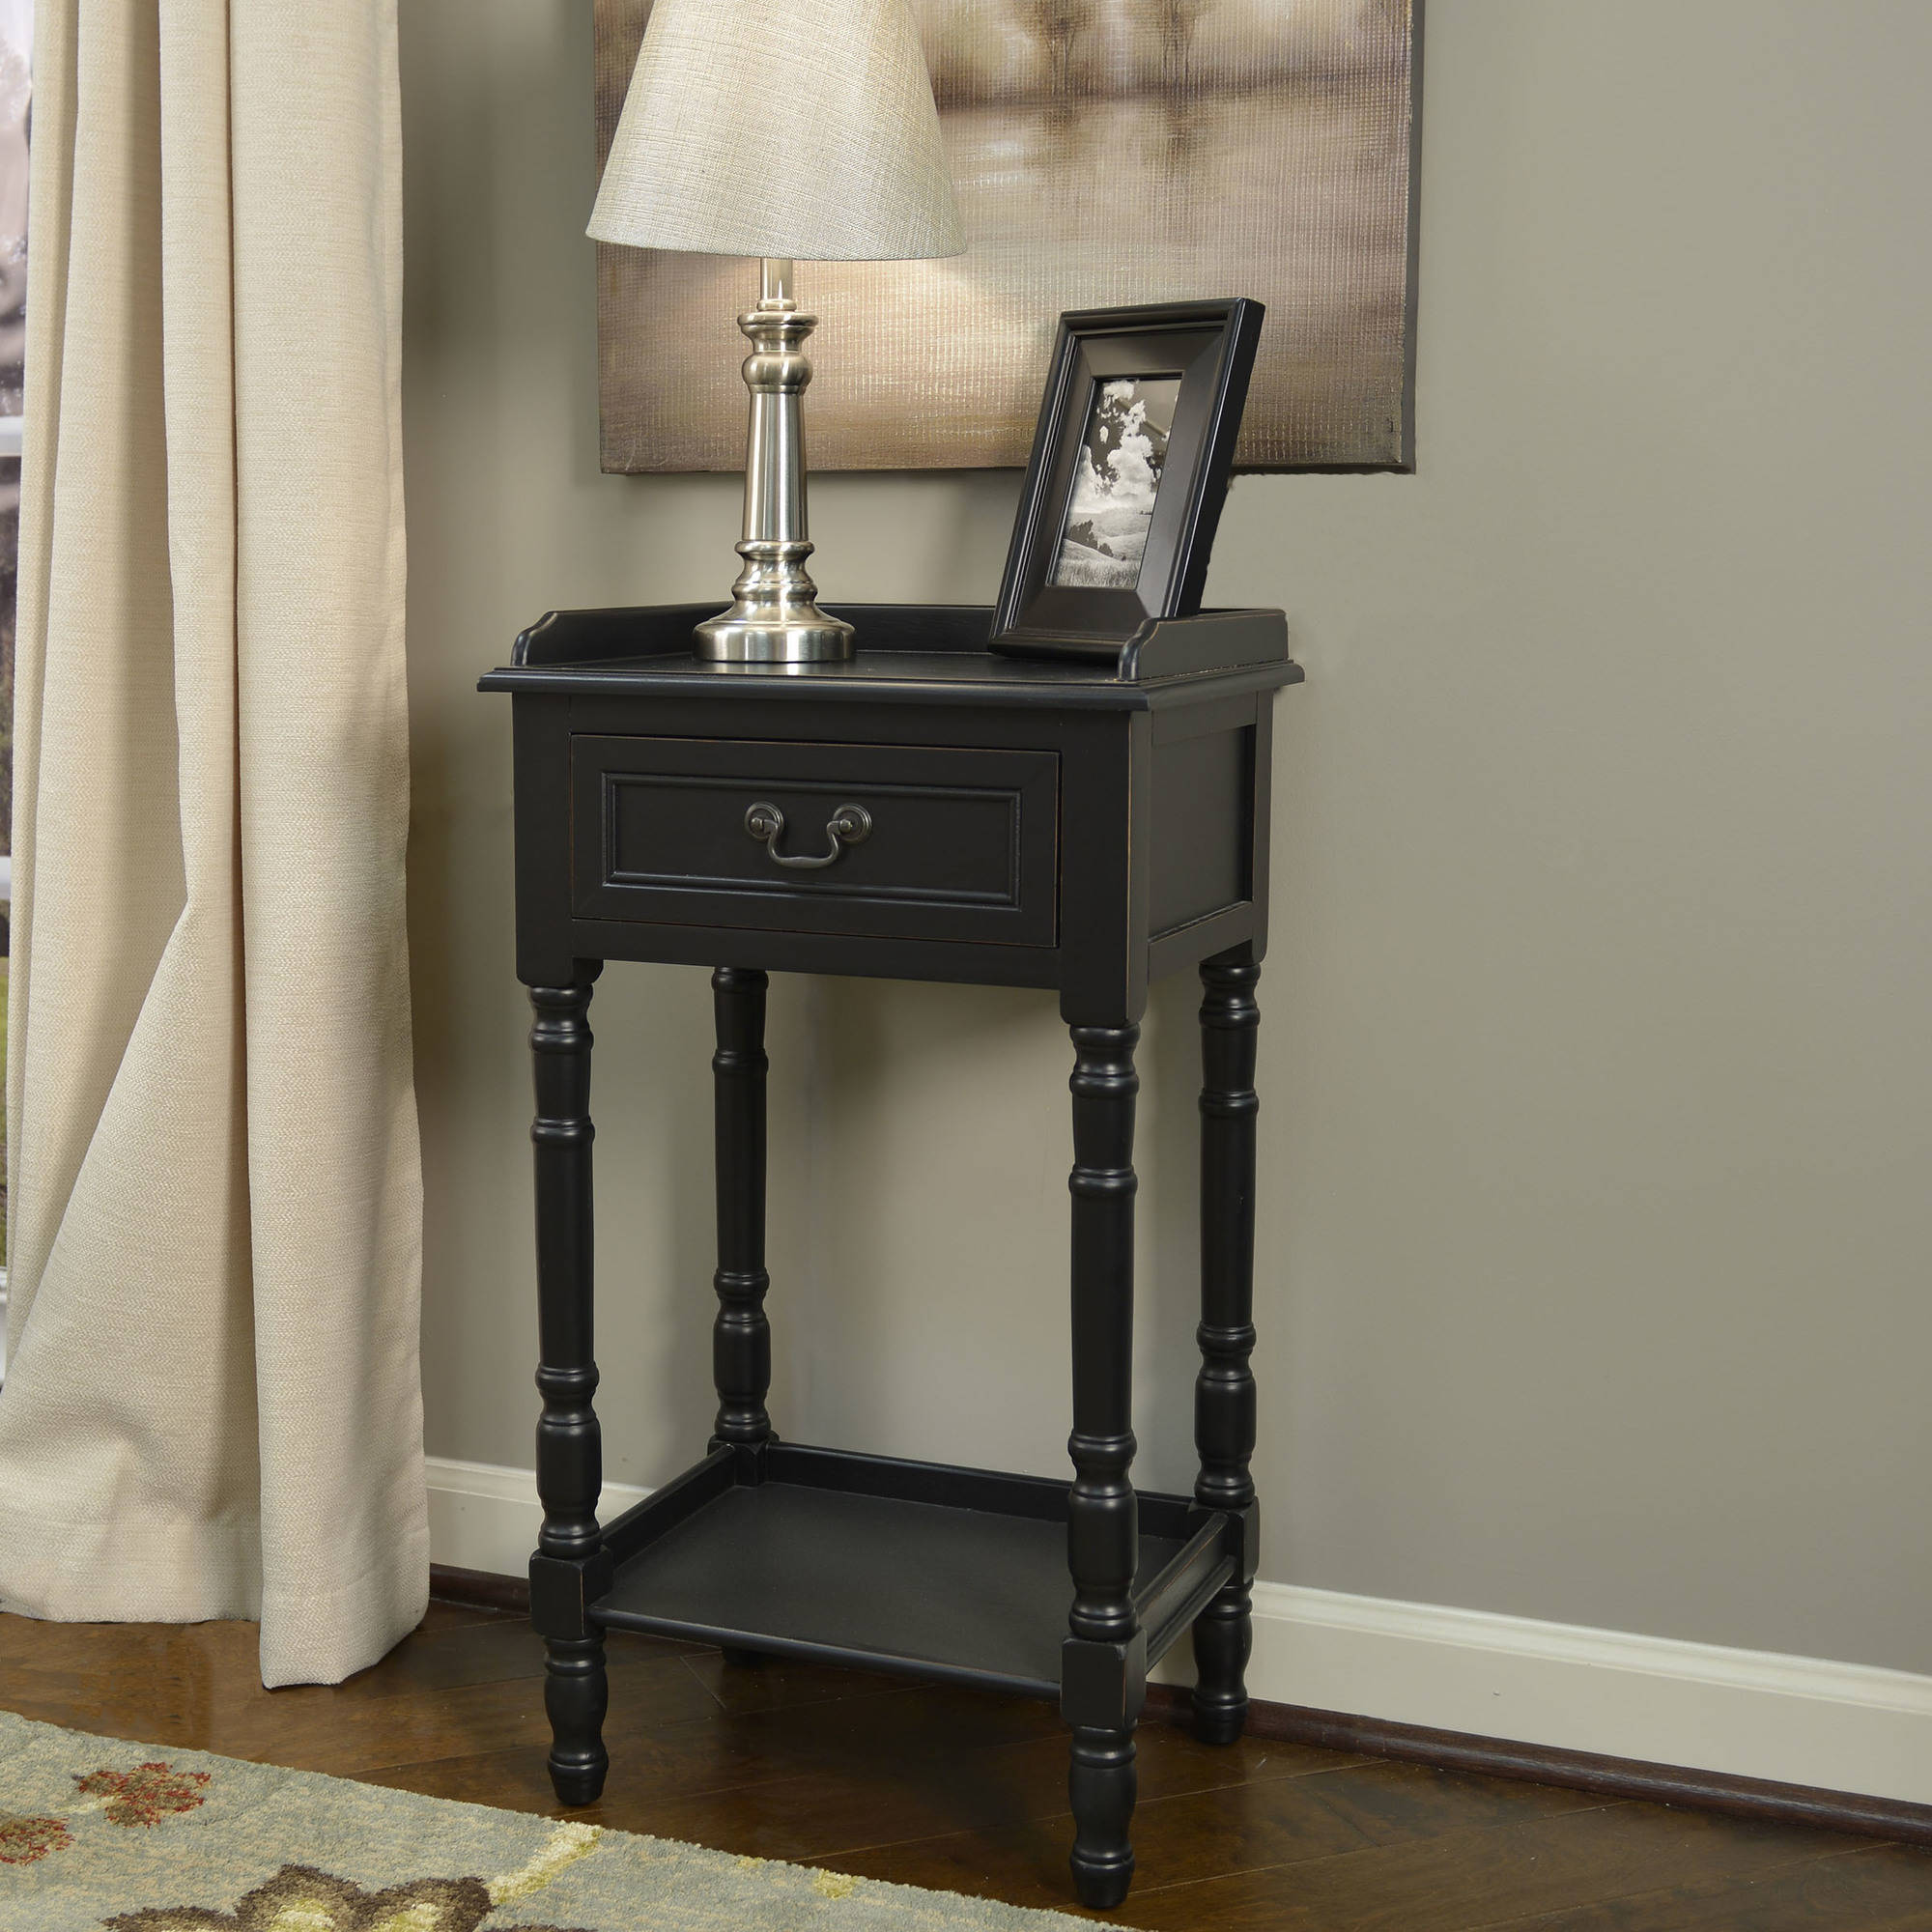 Better Homes and Gardens Traditional 1-Drawer Accent Table, Multiple Colors by JIMCO LAMP CO.